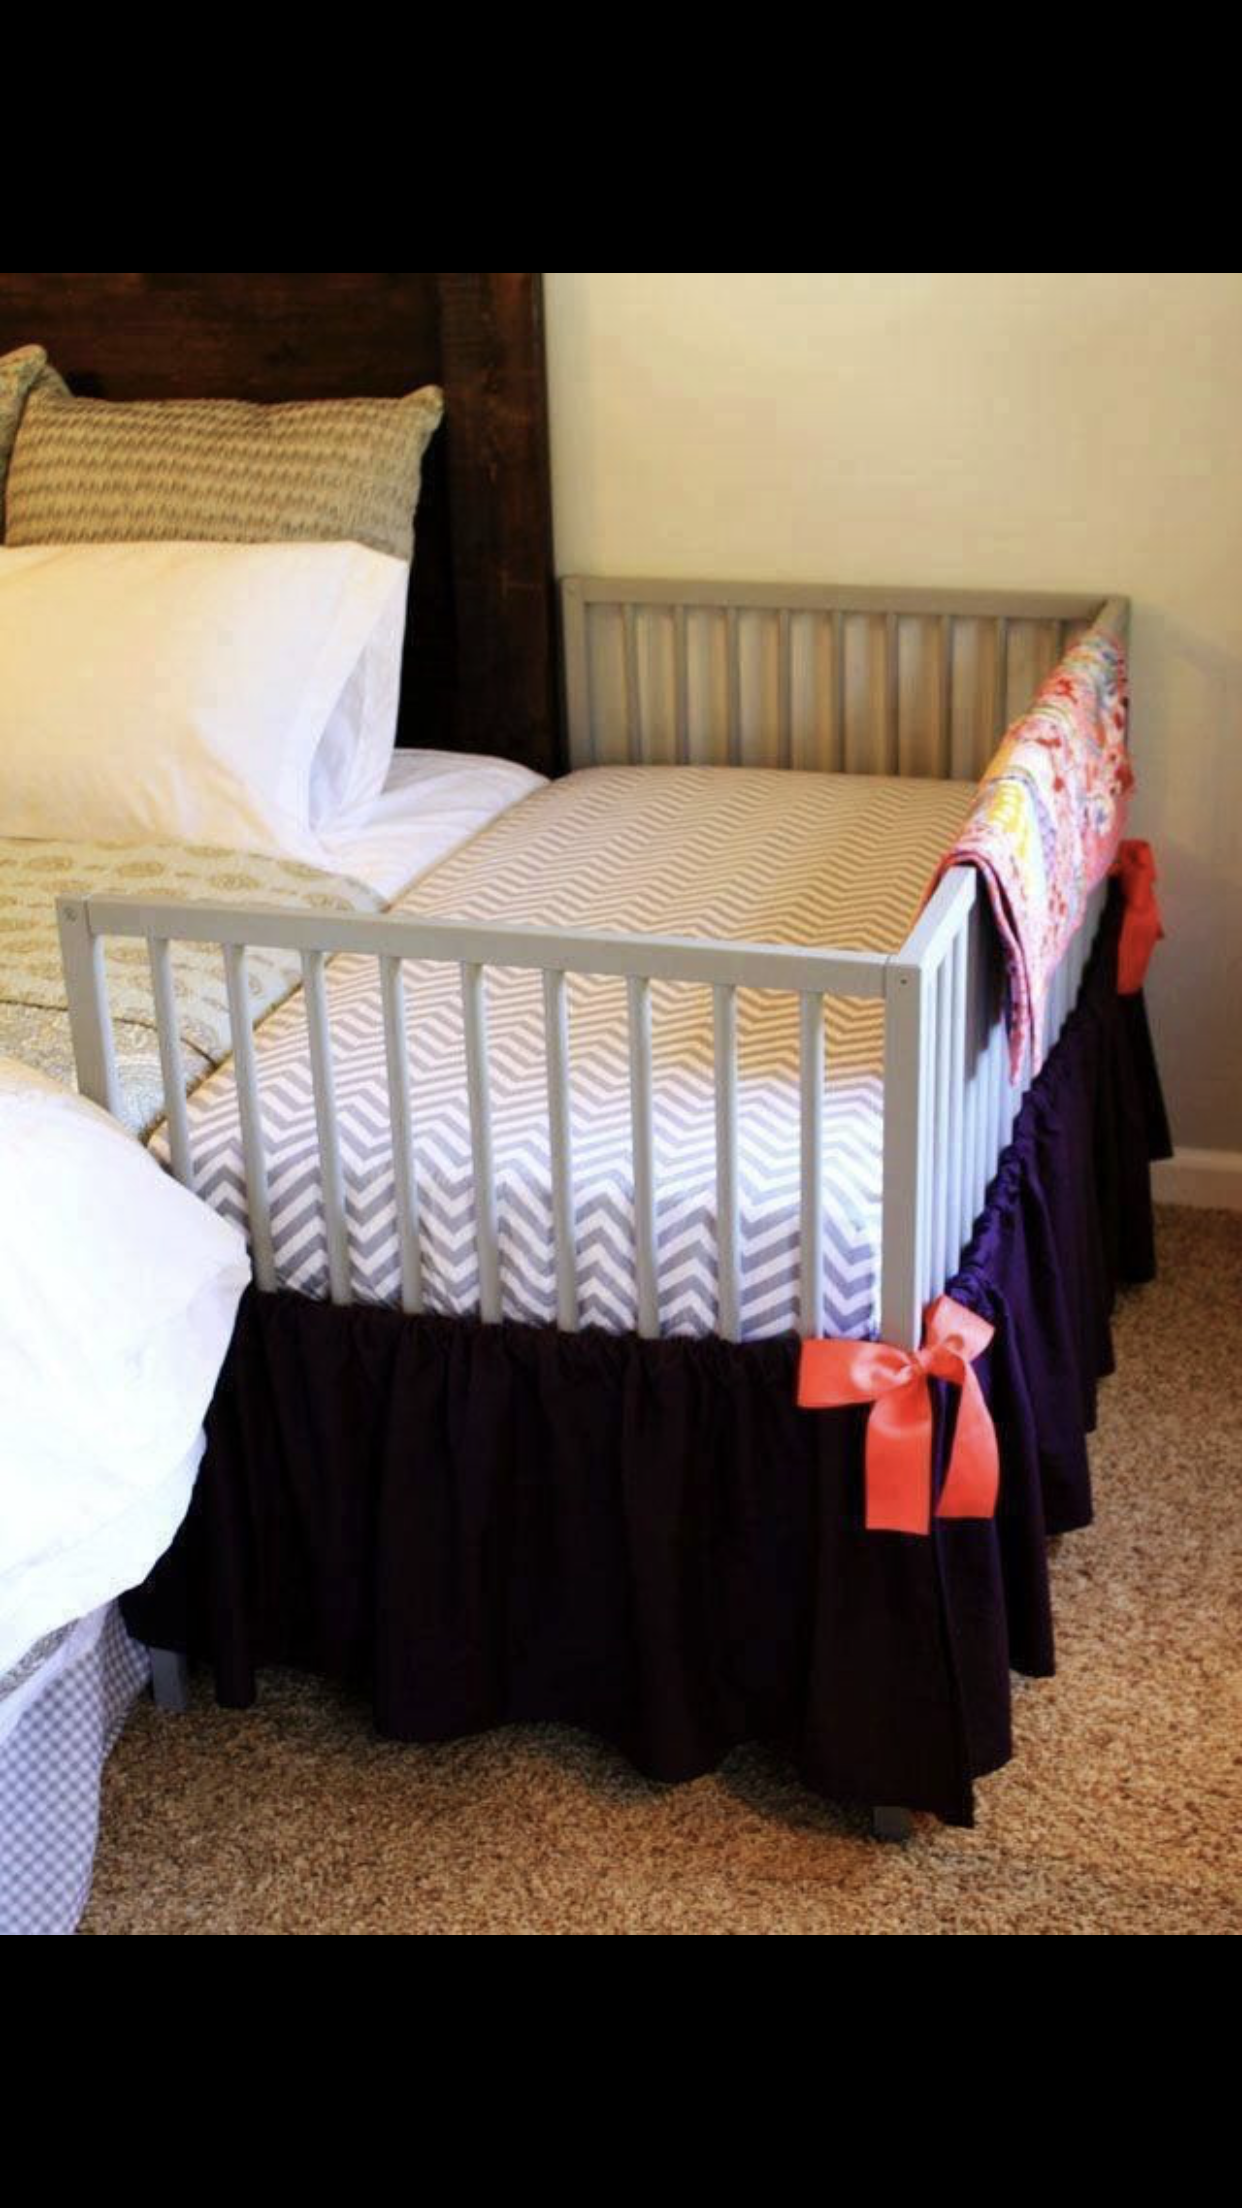 Pin by Sage on House ideas Ikea crib, Baby room decor